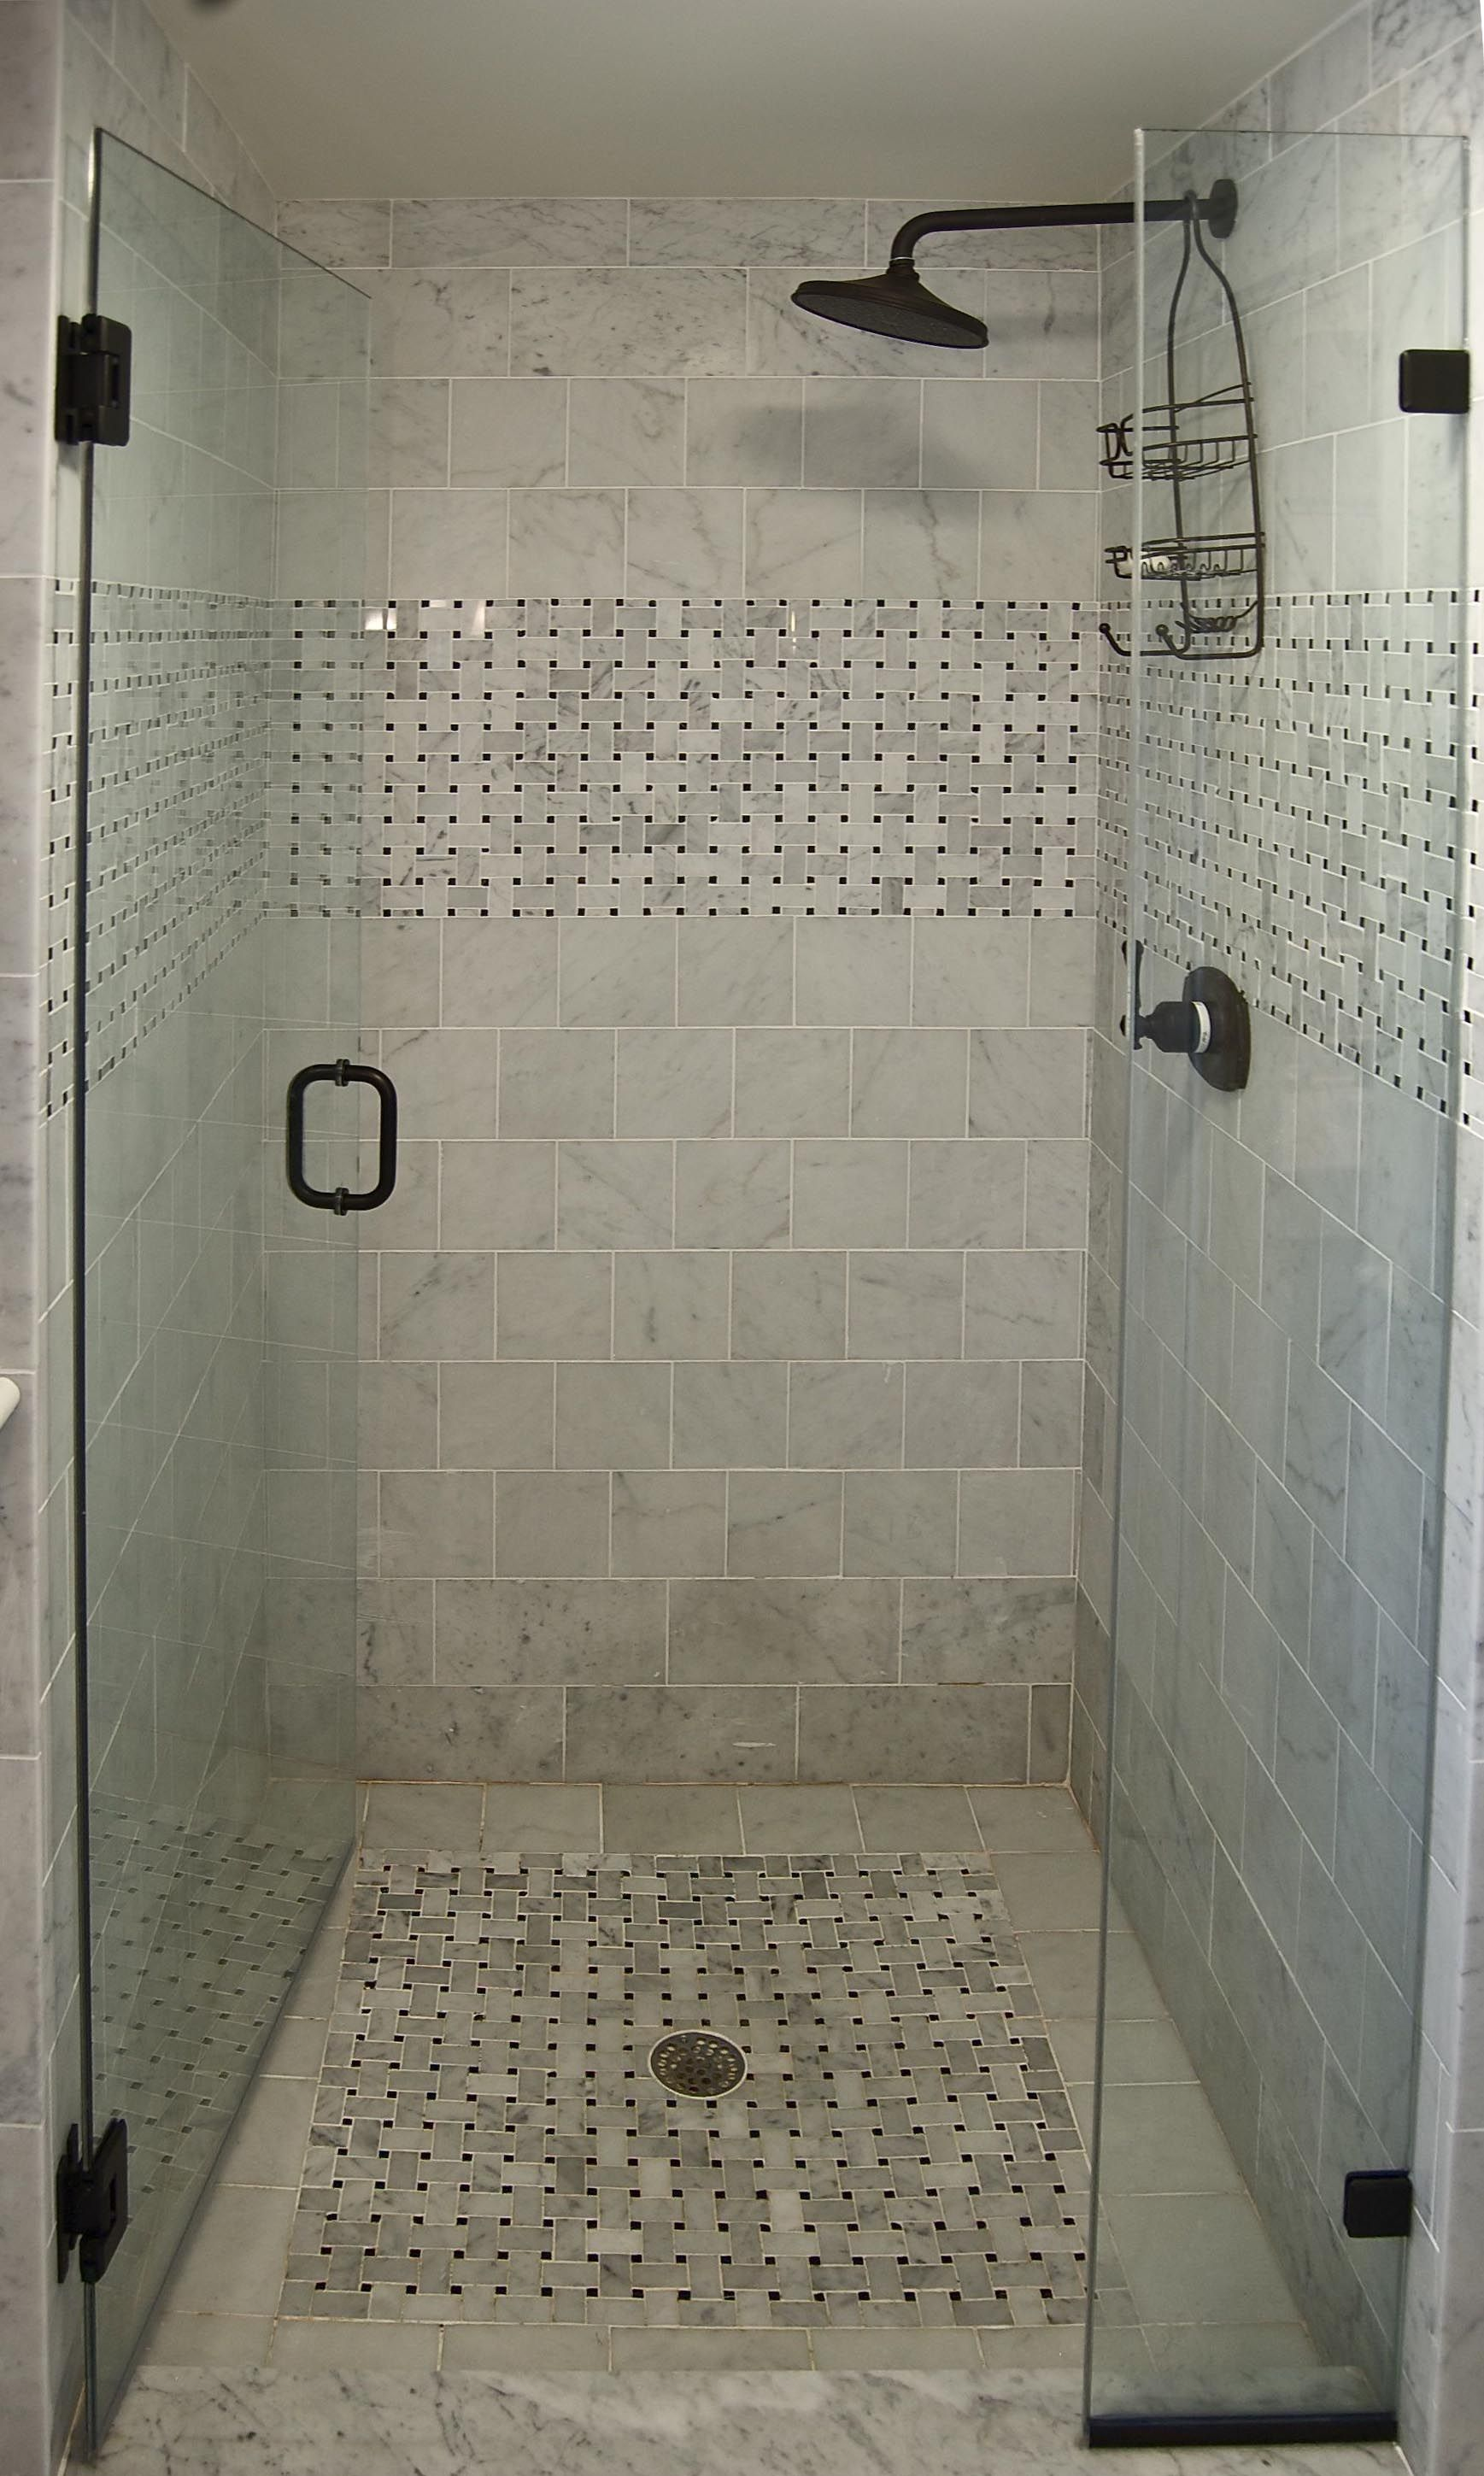 small shower basket weave strip rainshower head single dial control tile ideas - Shower Tile Design Ideas